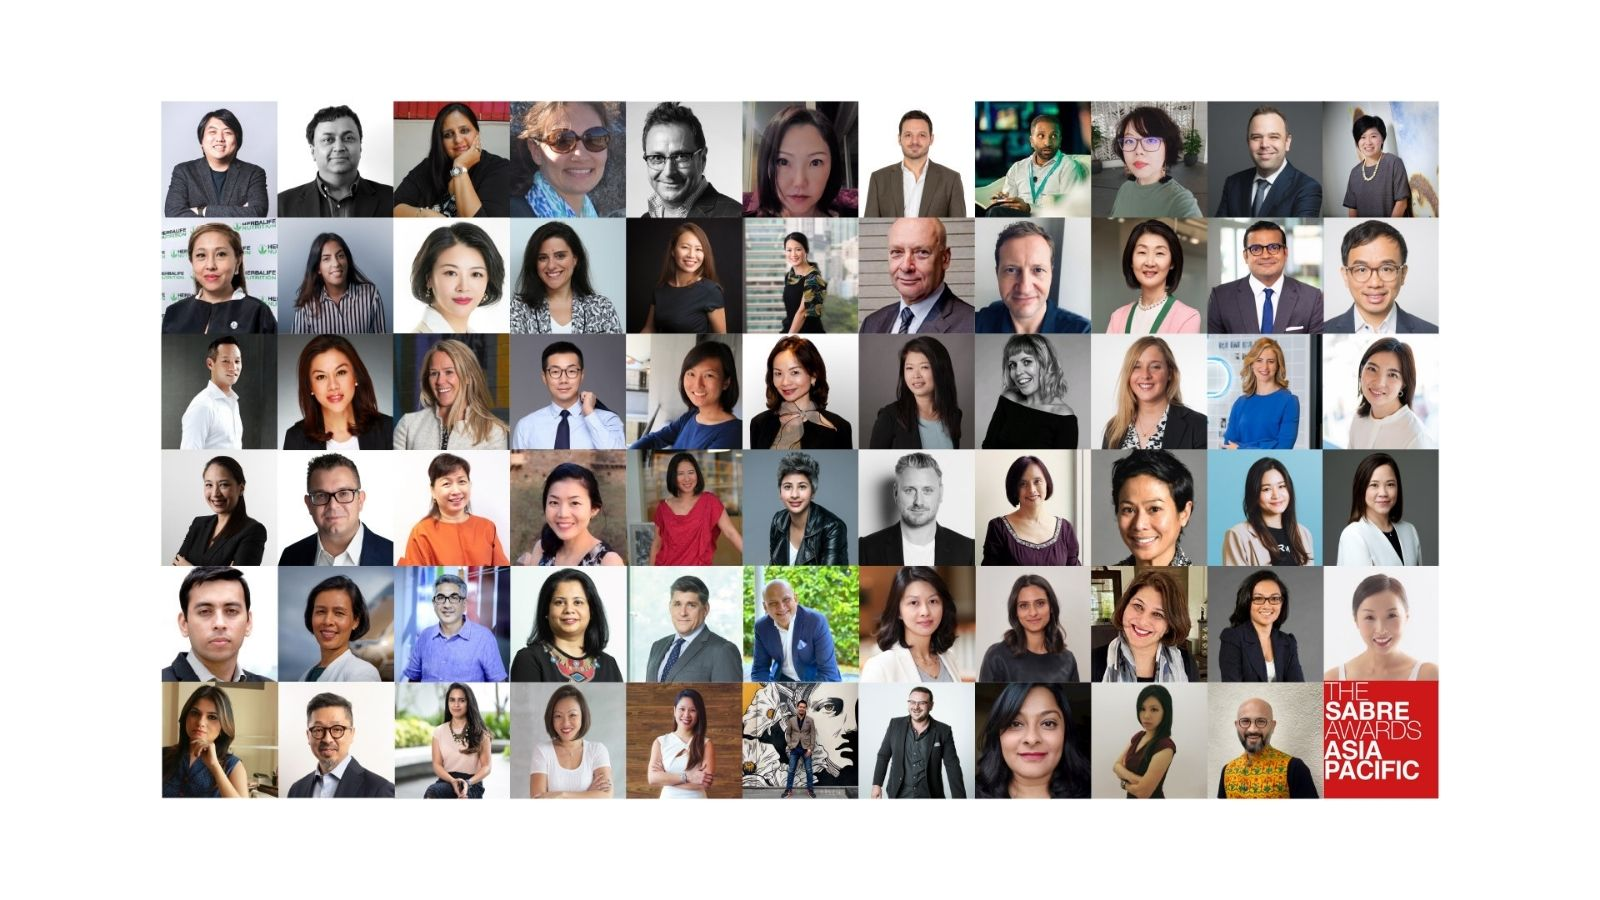 2021 Asia-Pacific SABRE Awards Jury Unveiled